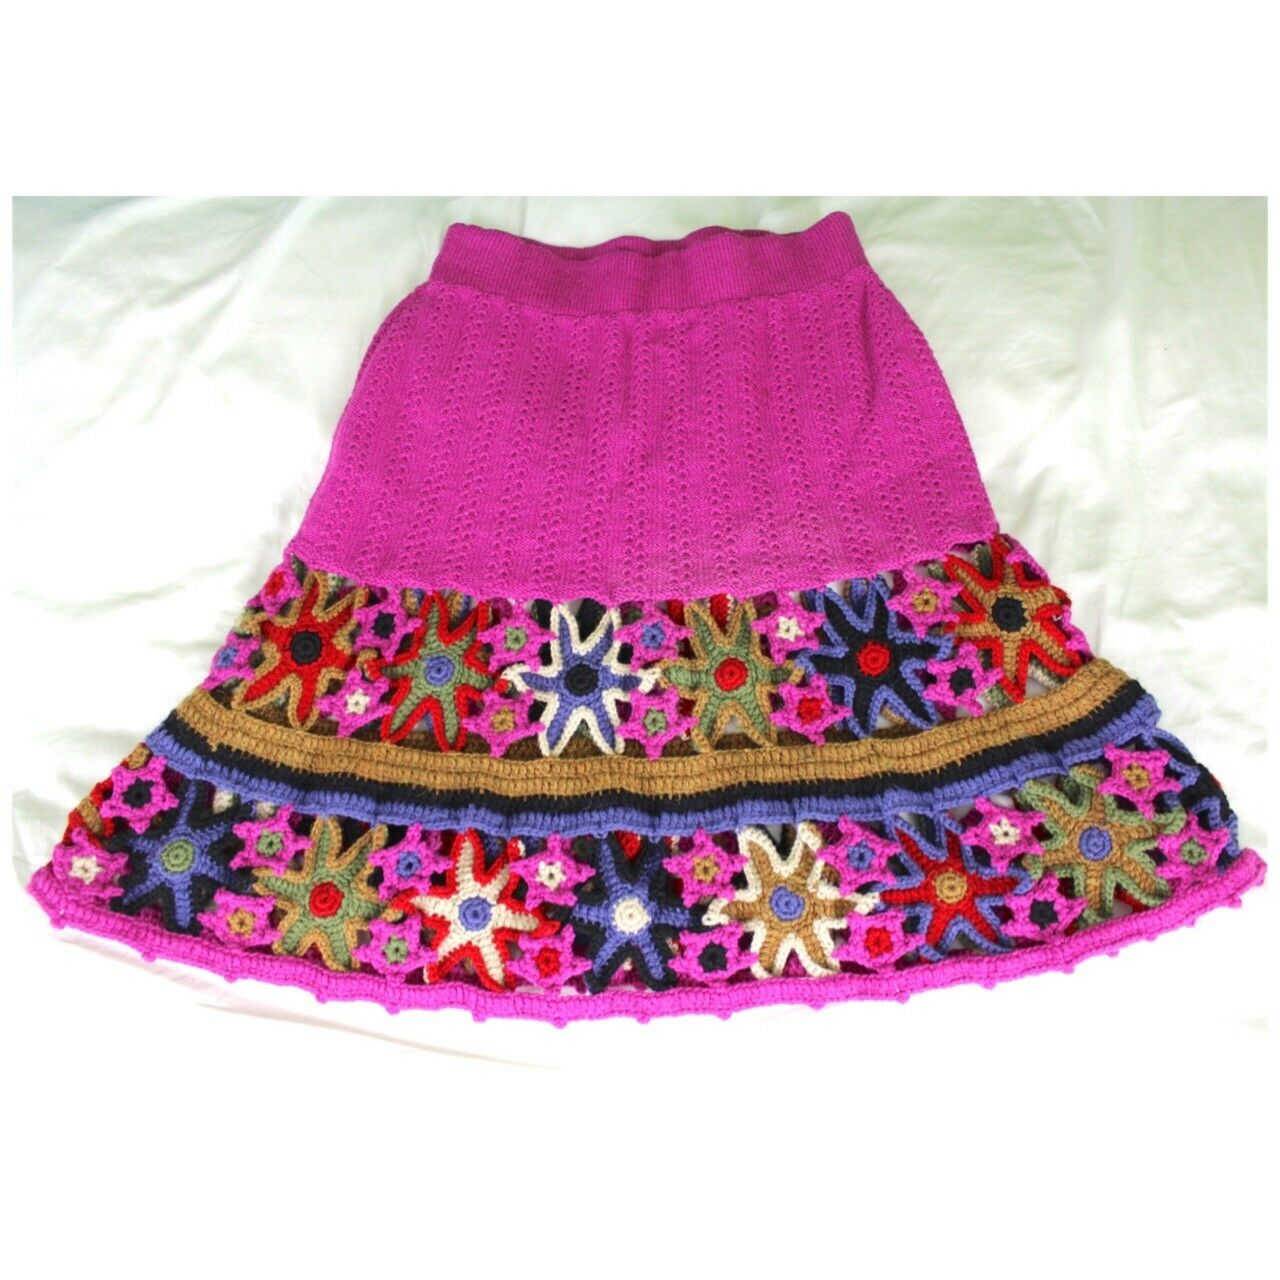 Peruvian Trading Co. Merino Wool Crochet Skirt One Size Magenta